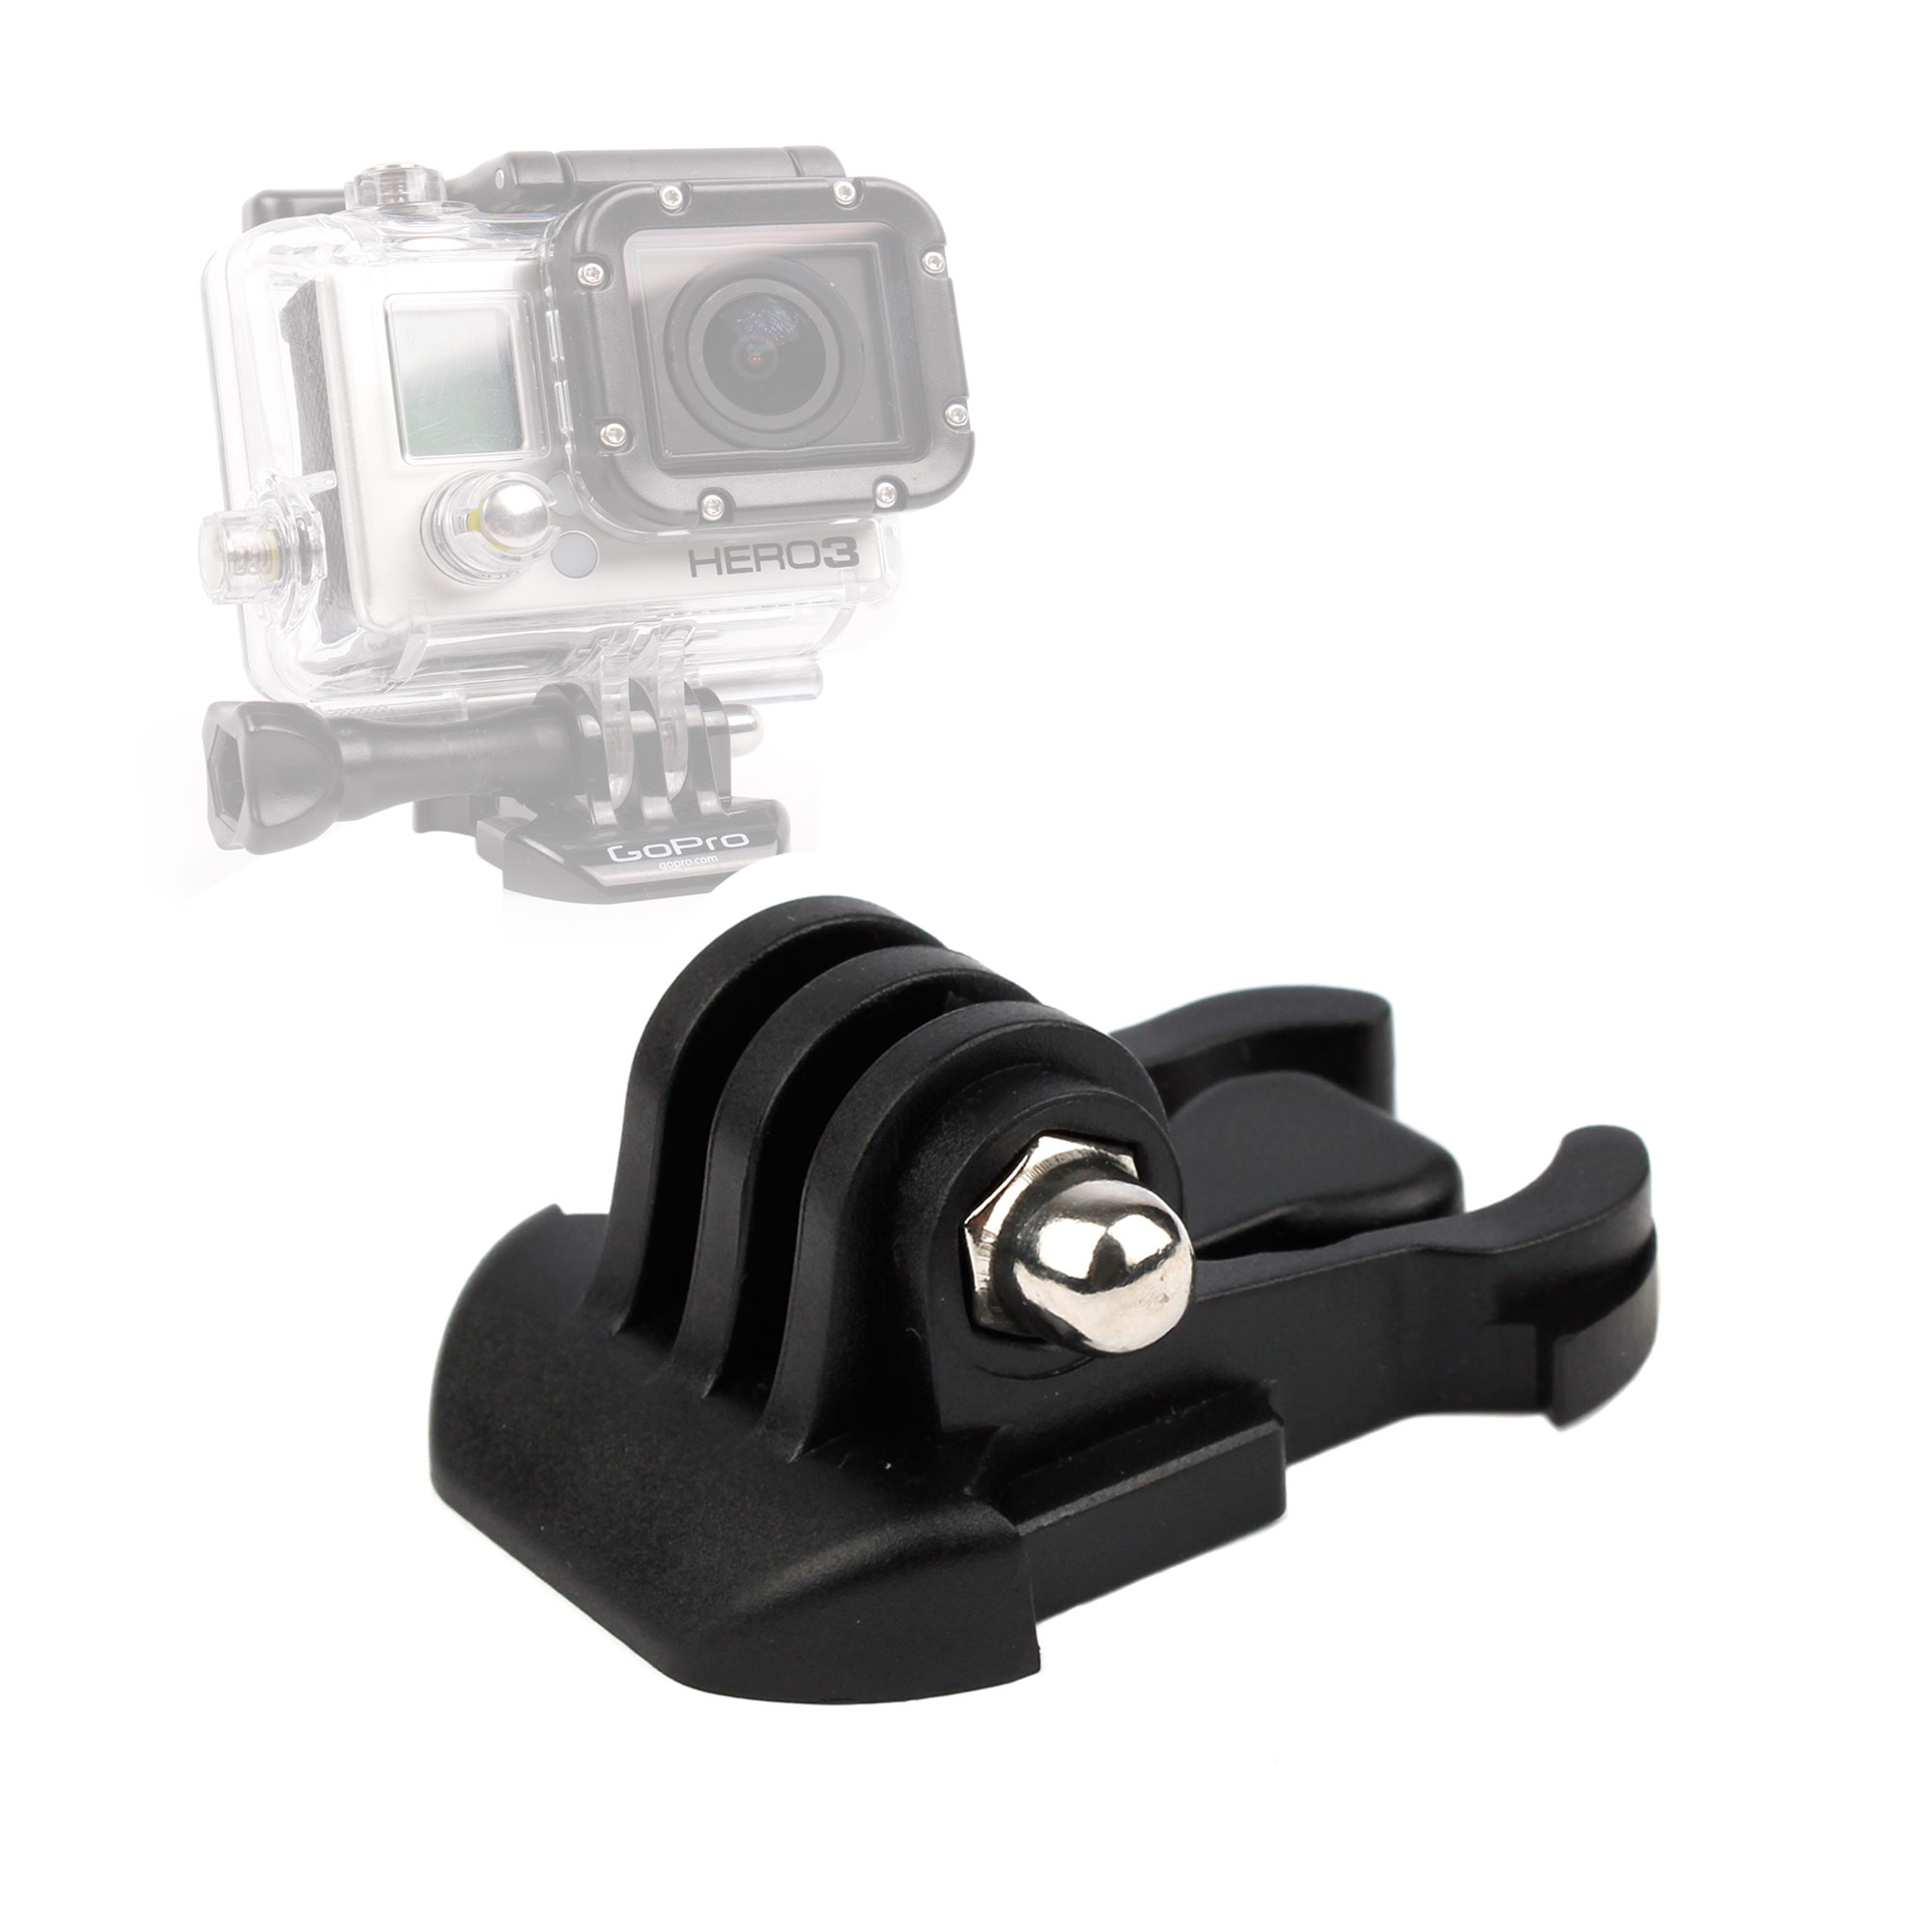 accessoires pour gopro 1 2 3 3 hd hero 4 hero lcd. Black Bedroom Furniture Sets. Home Design Ideas